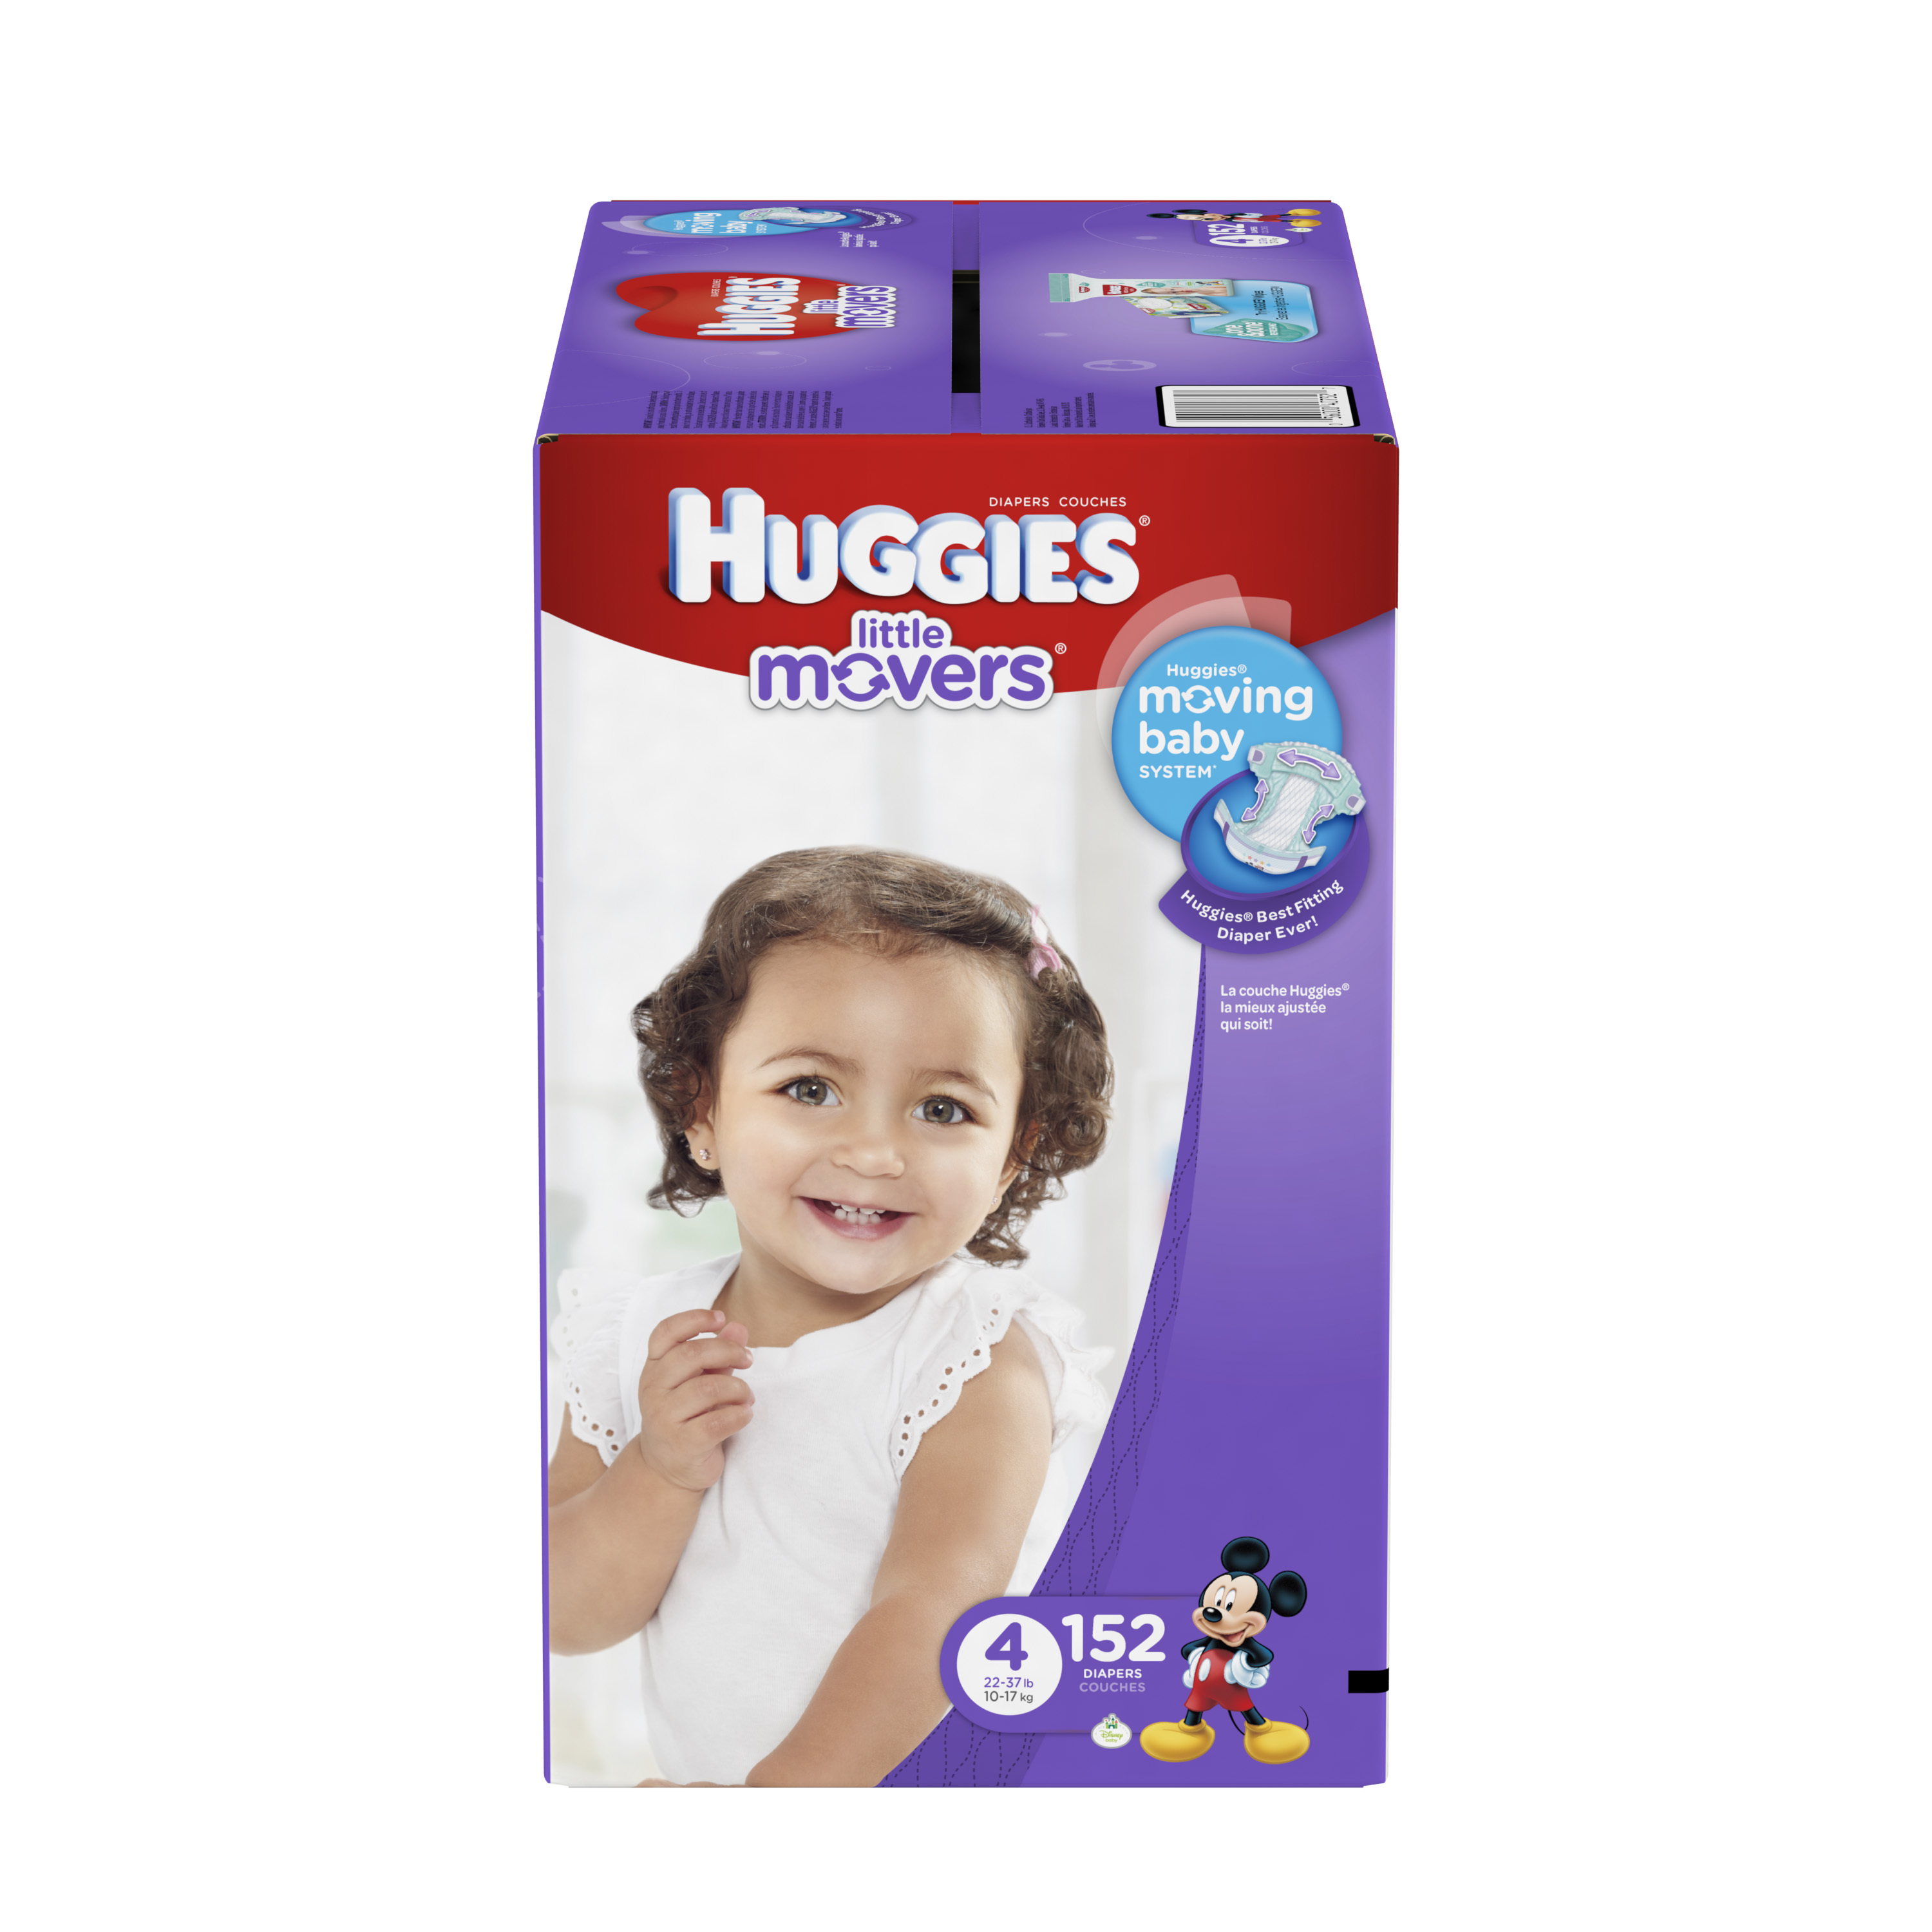 Huggies Little Movers Diapers Size 4 - 152 CT